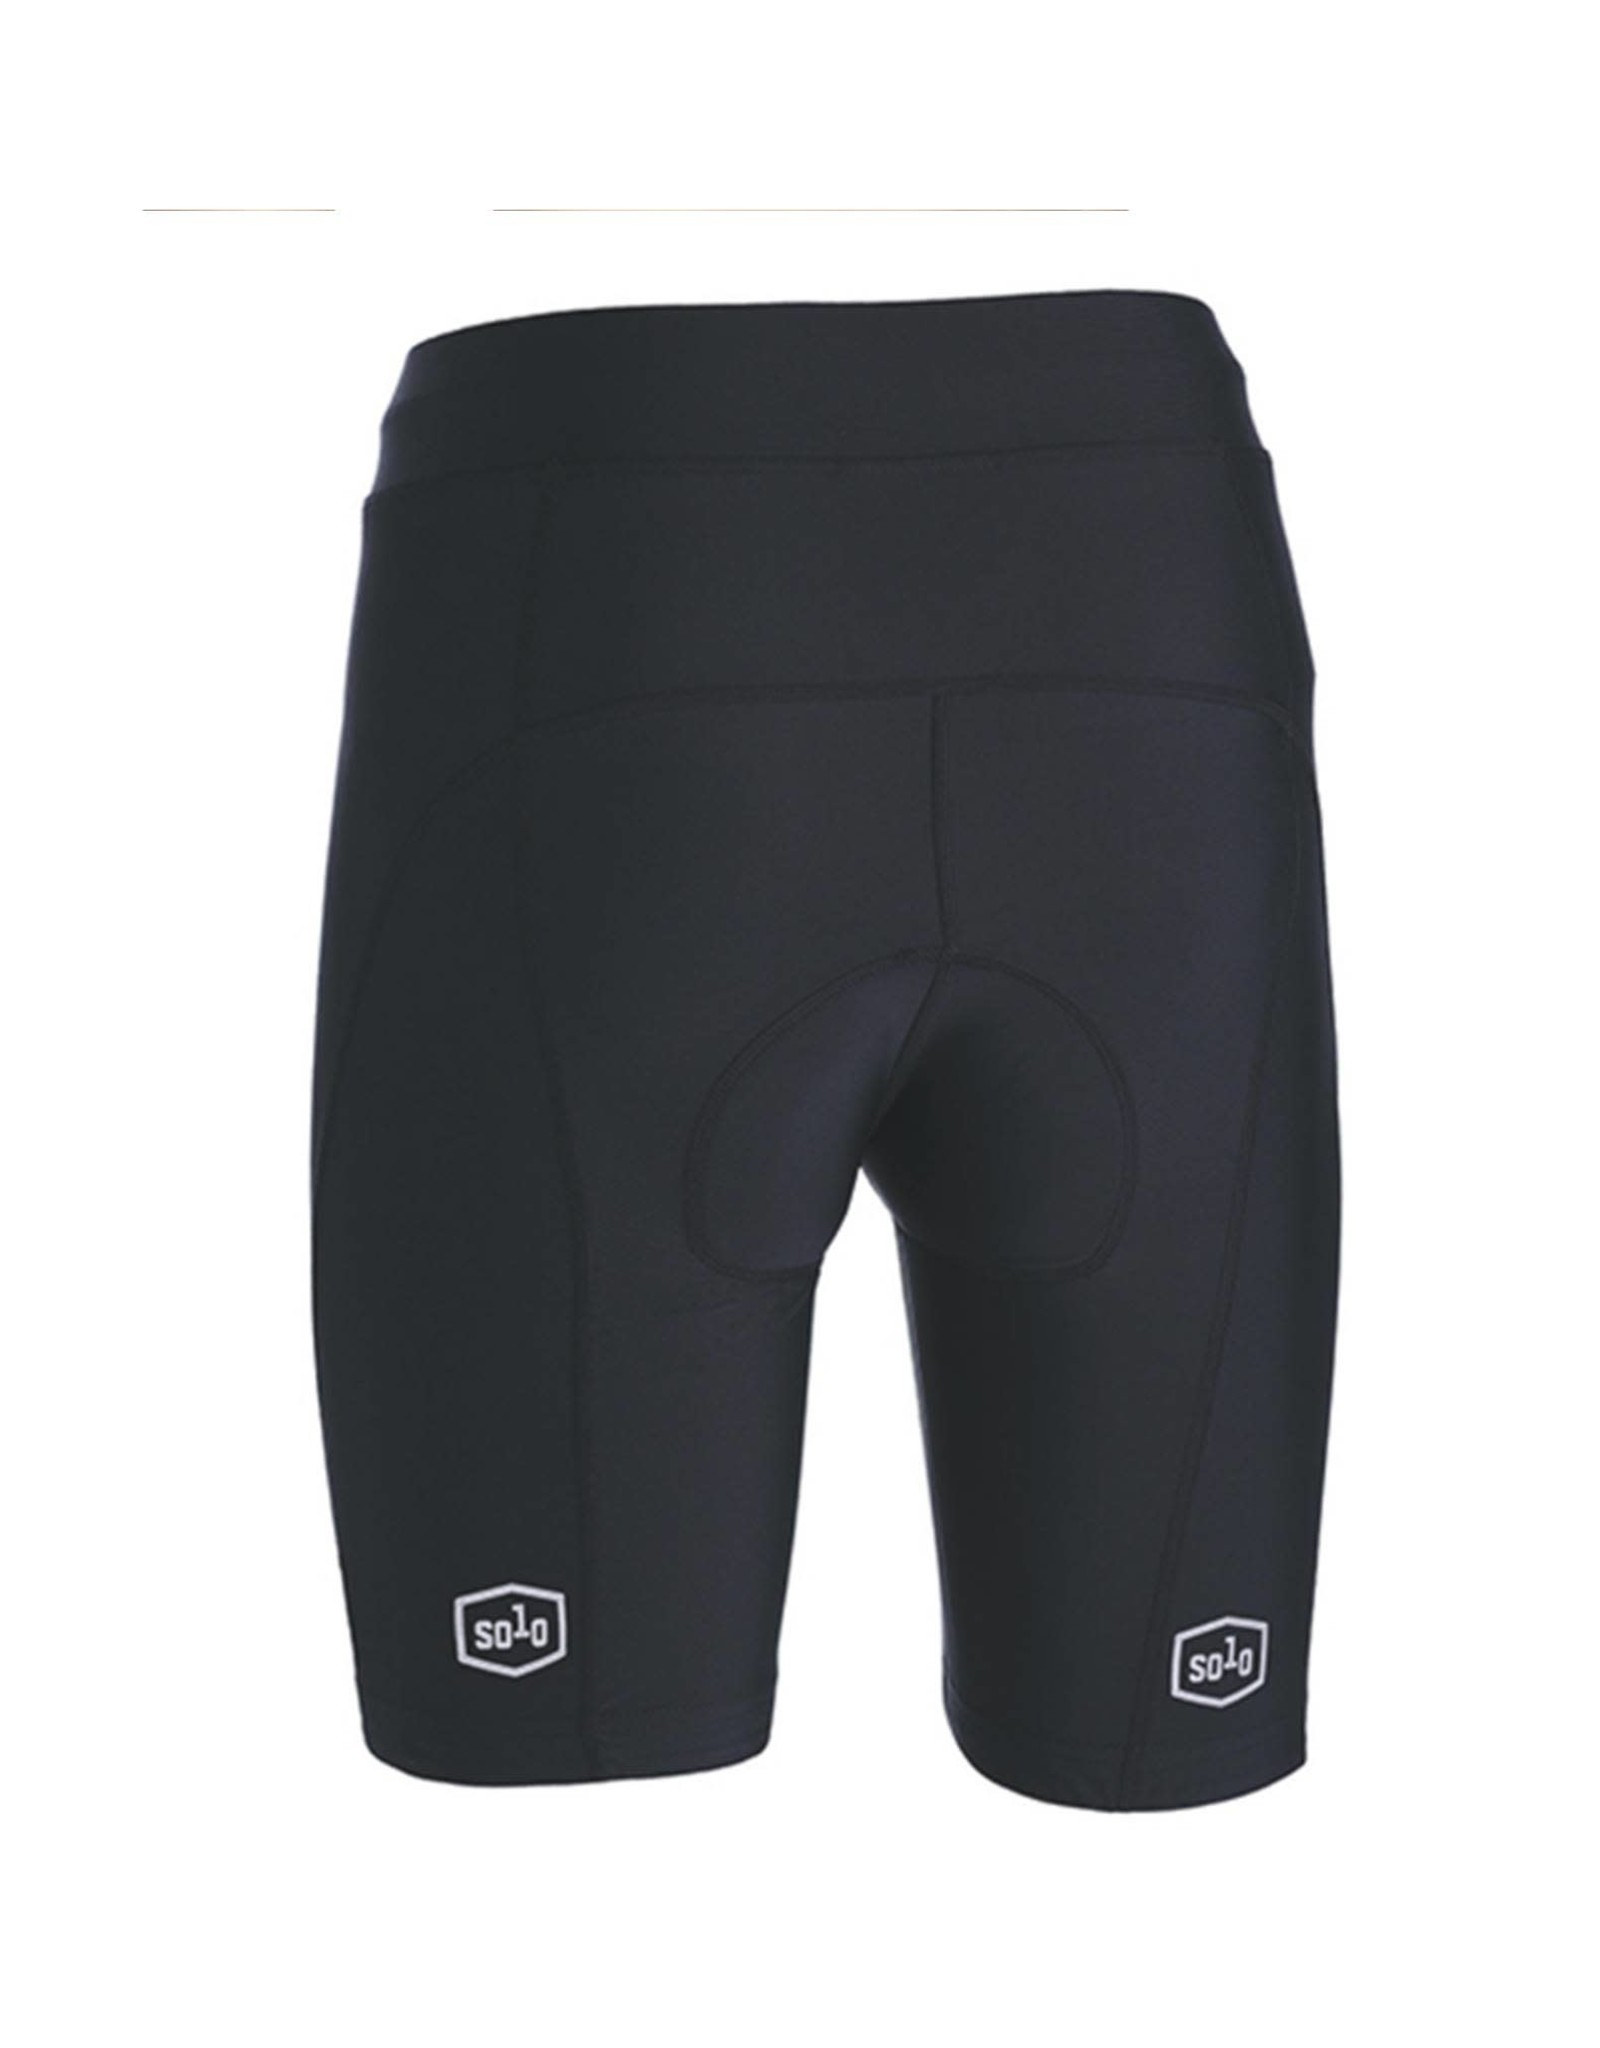 SOLO Solo Sport Womens Cycling Shorts